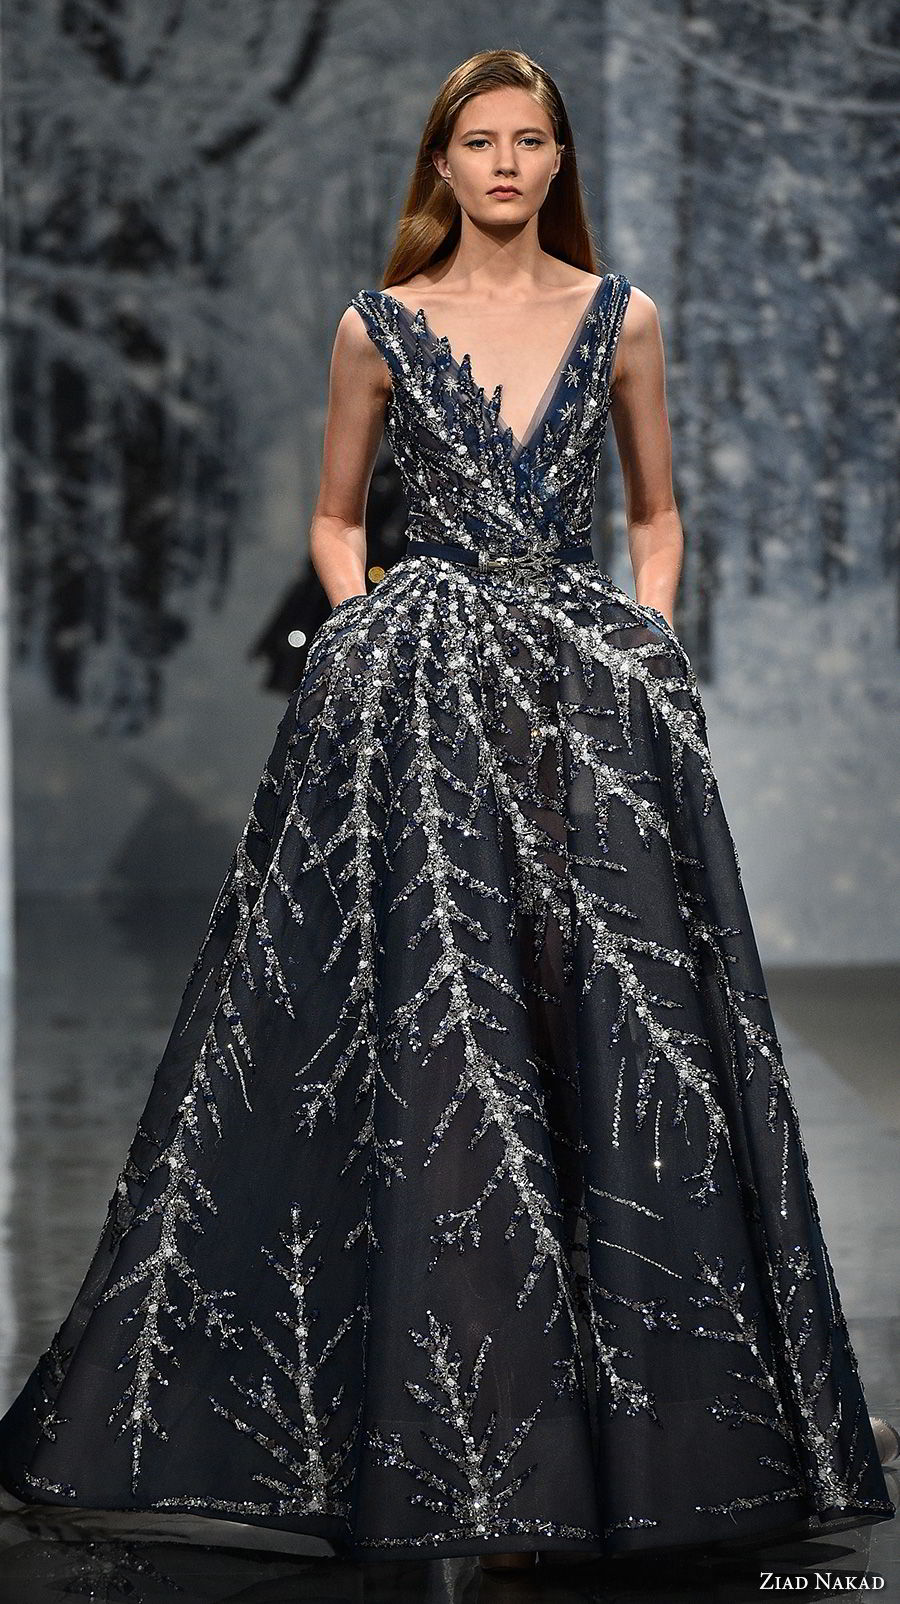 ziad nakad couture fall 2017 sleeveless deep v neck full metallic embellishment elegant glamorous dark navy blue a line wedding dress open v back chapel train (18) mv